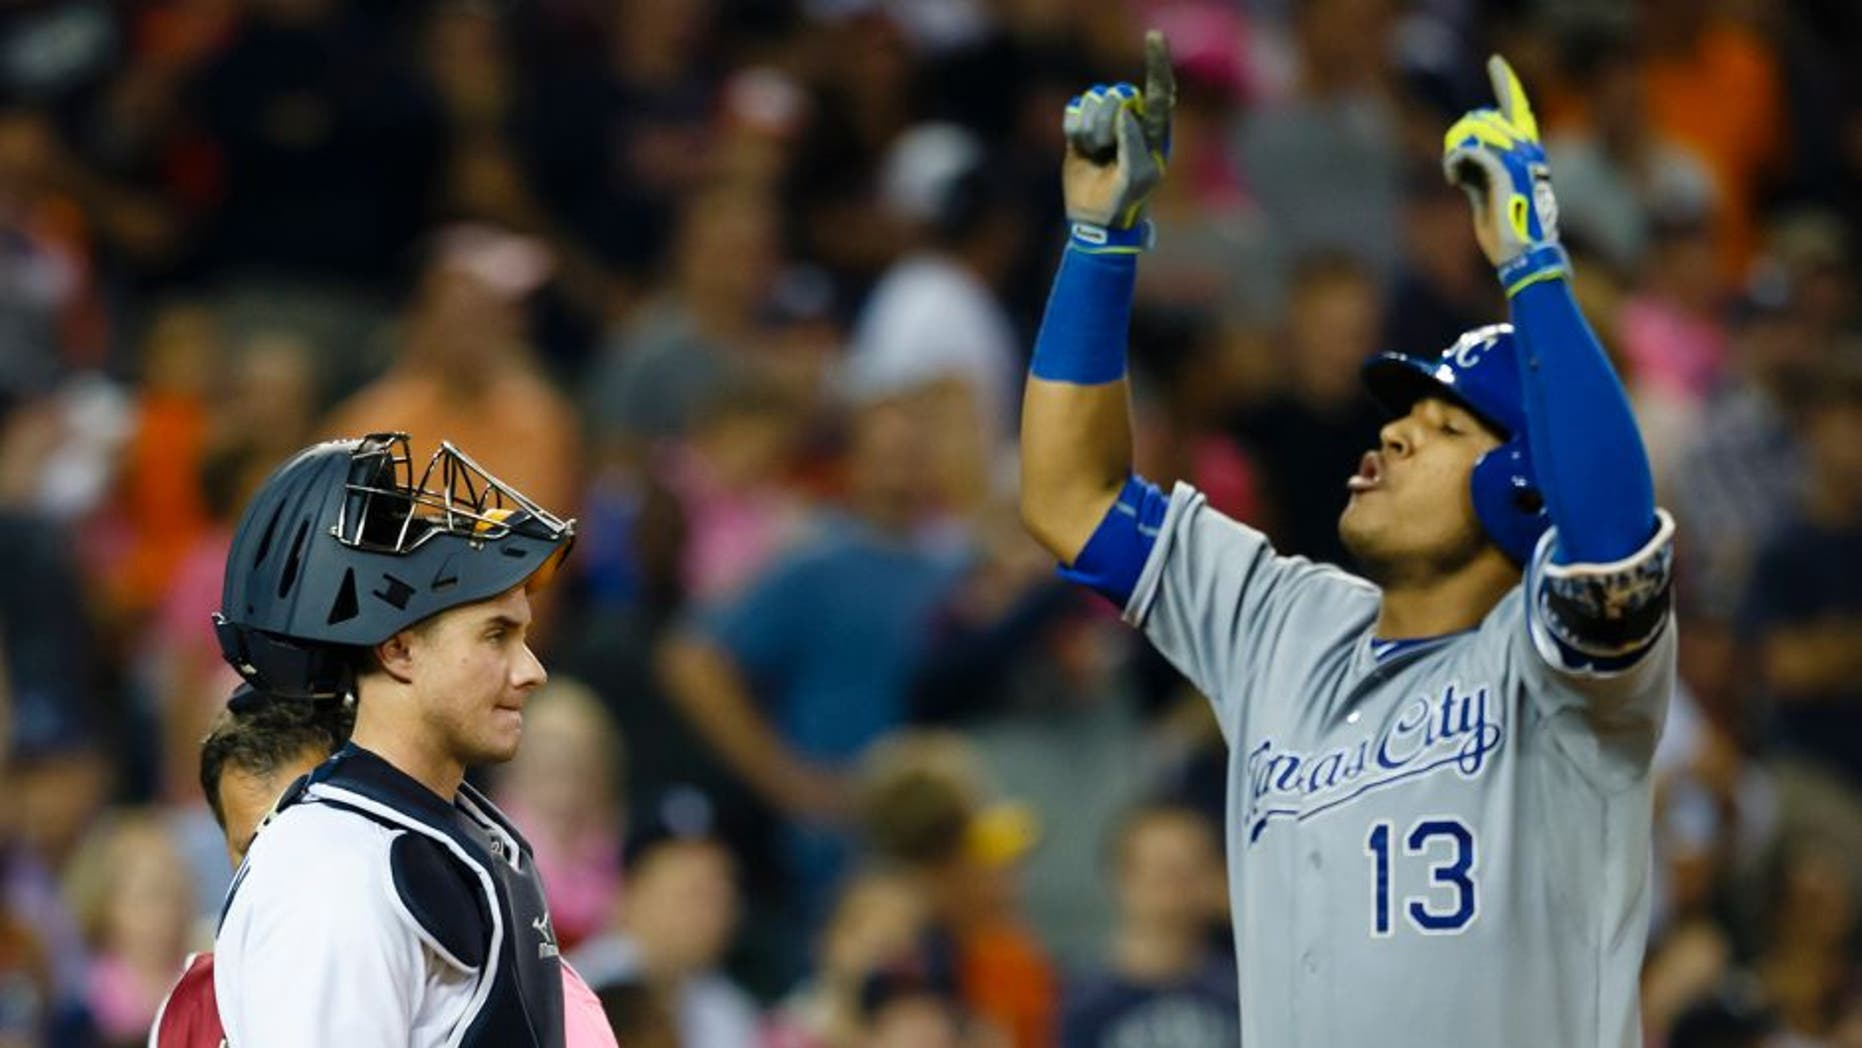 Sep 18, 2015; Detroit, MI, USA; Detroit Tigers catcher James McCann (34) reacts as Kansas City Royals catcher Salvador Perez (13) celebrates his two run home run in the ninth inning at Comerica Park. Mandatory Credit: Rick Osentoski-USA TODAY Sports